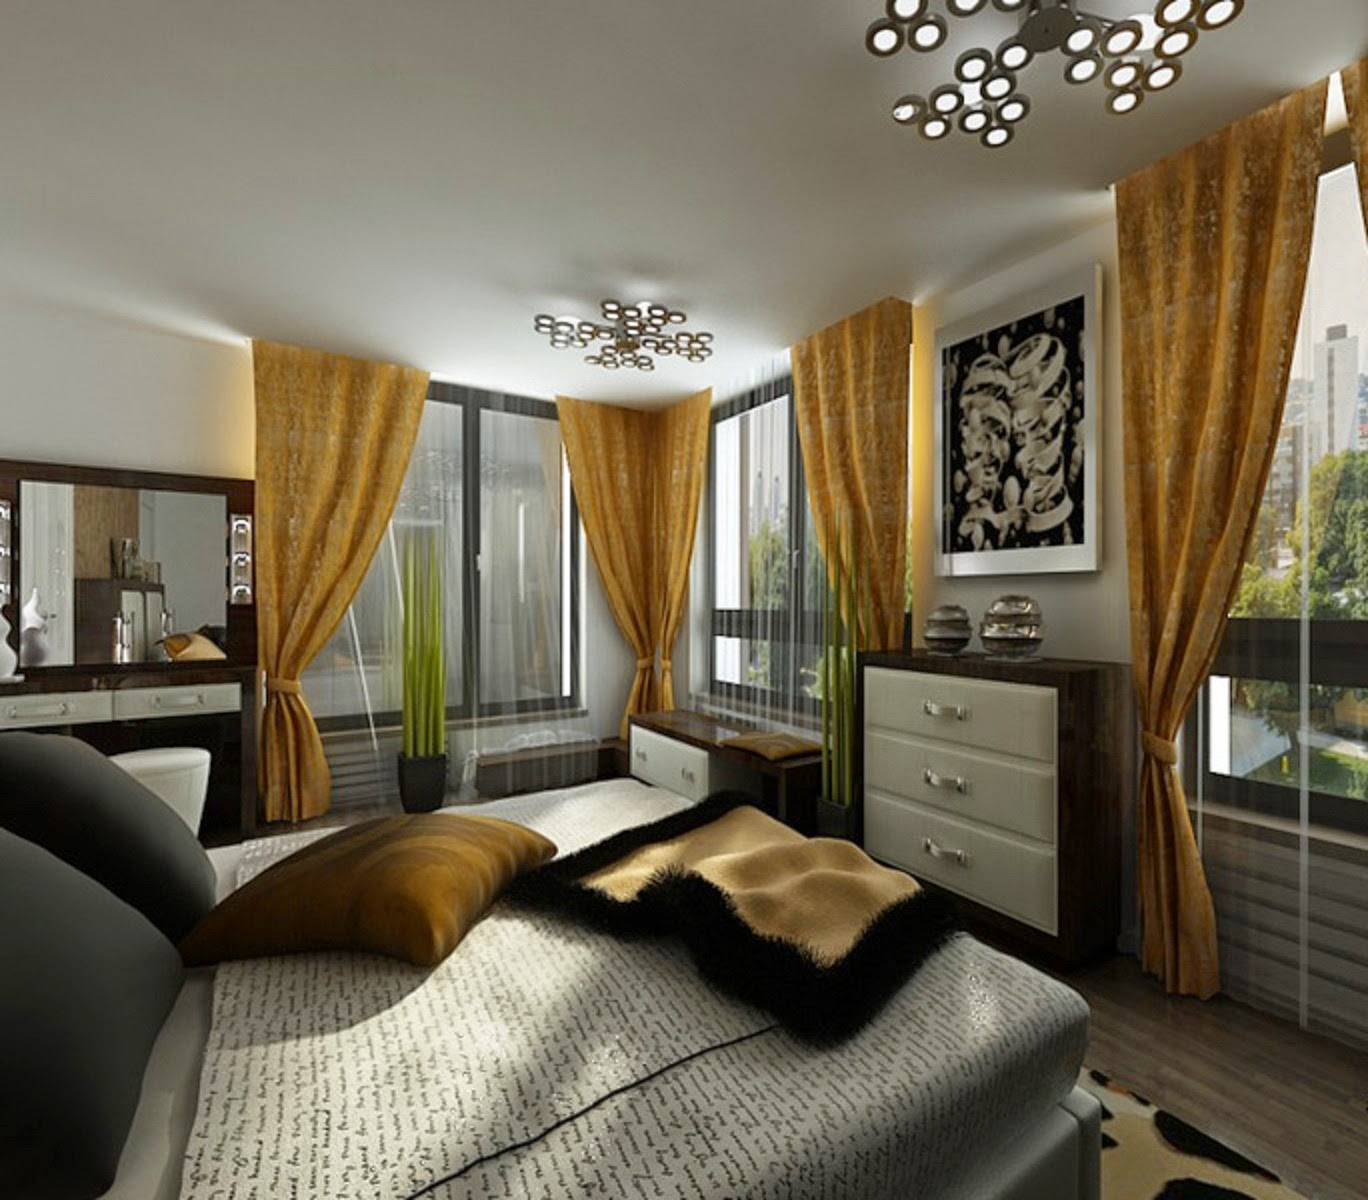 Dynamic views most beautiful bedroom interior designs for Beautiful bedroom interior